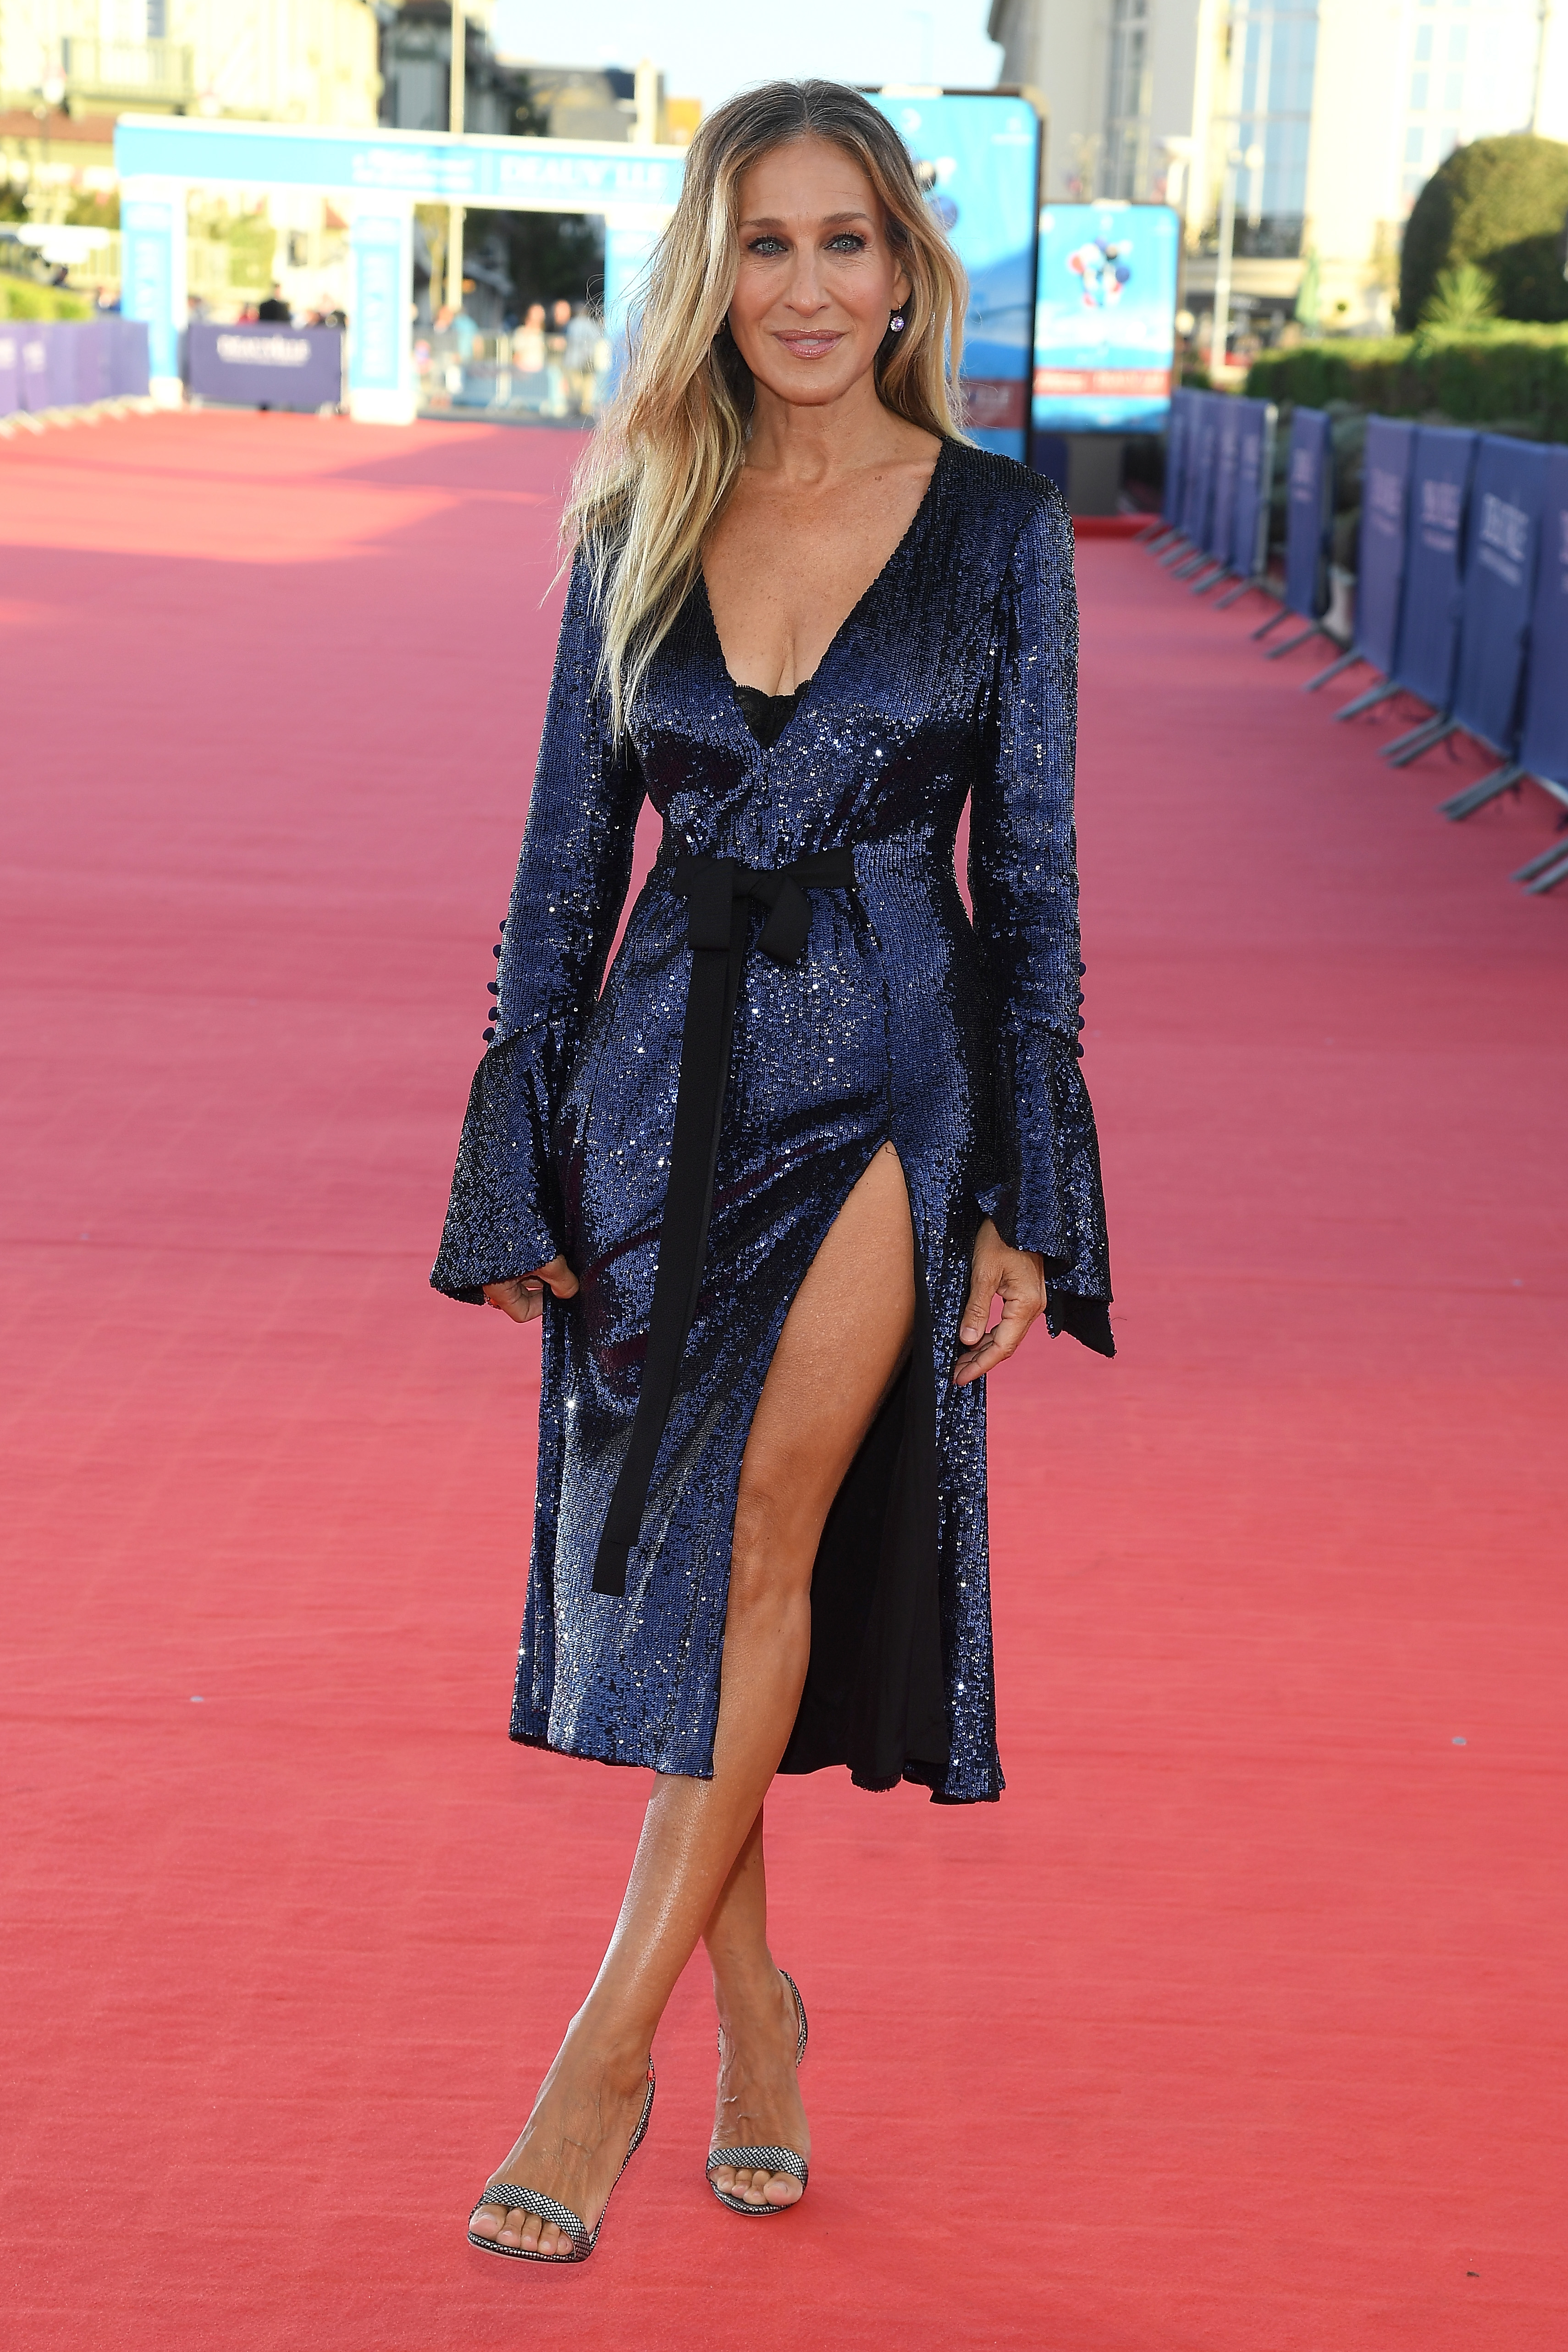 Sarah Jessica Parker attends the premiere of her new film 'Here And Now' on September 6, 2018 in Deauville, France. (Photo by Pascal Le Segretain/Getty Images)